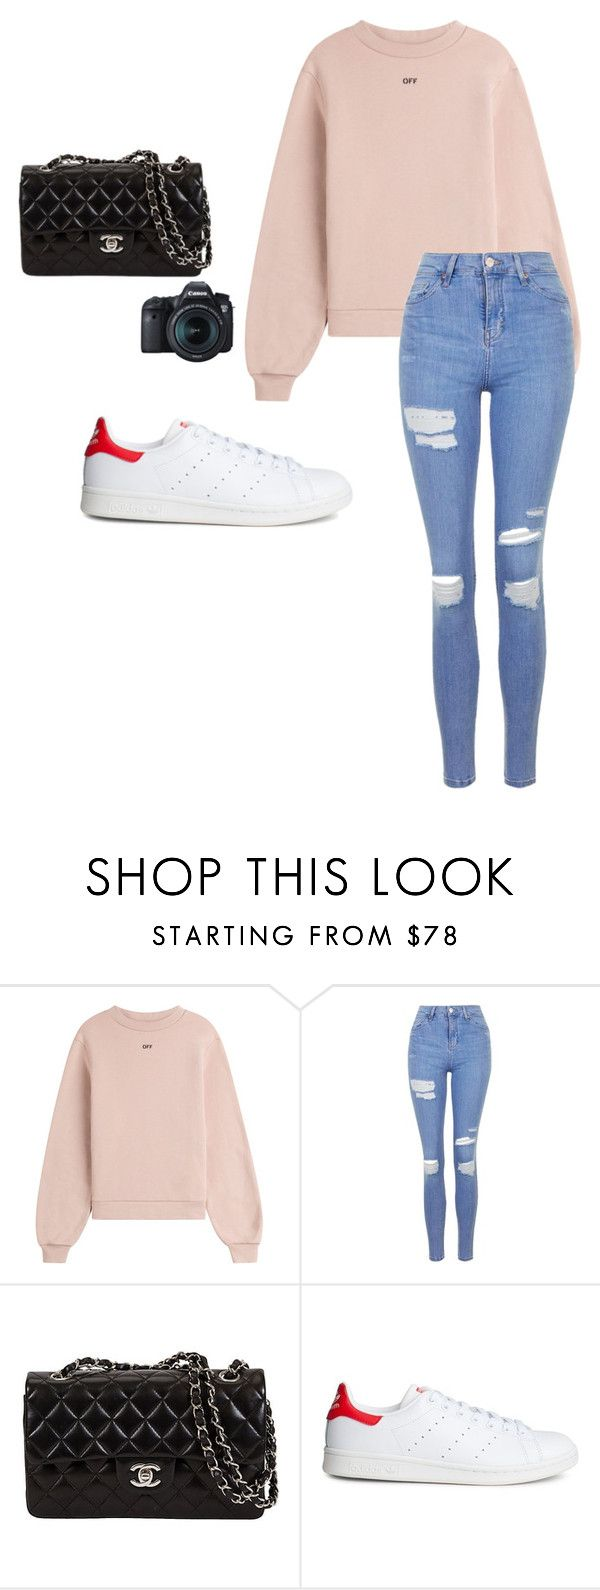 """Monica geuze #2"" by merelesselaar on Polyvore featuring mode, Off-White, Topshop, adidas en Eos"